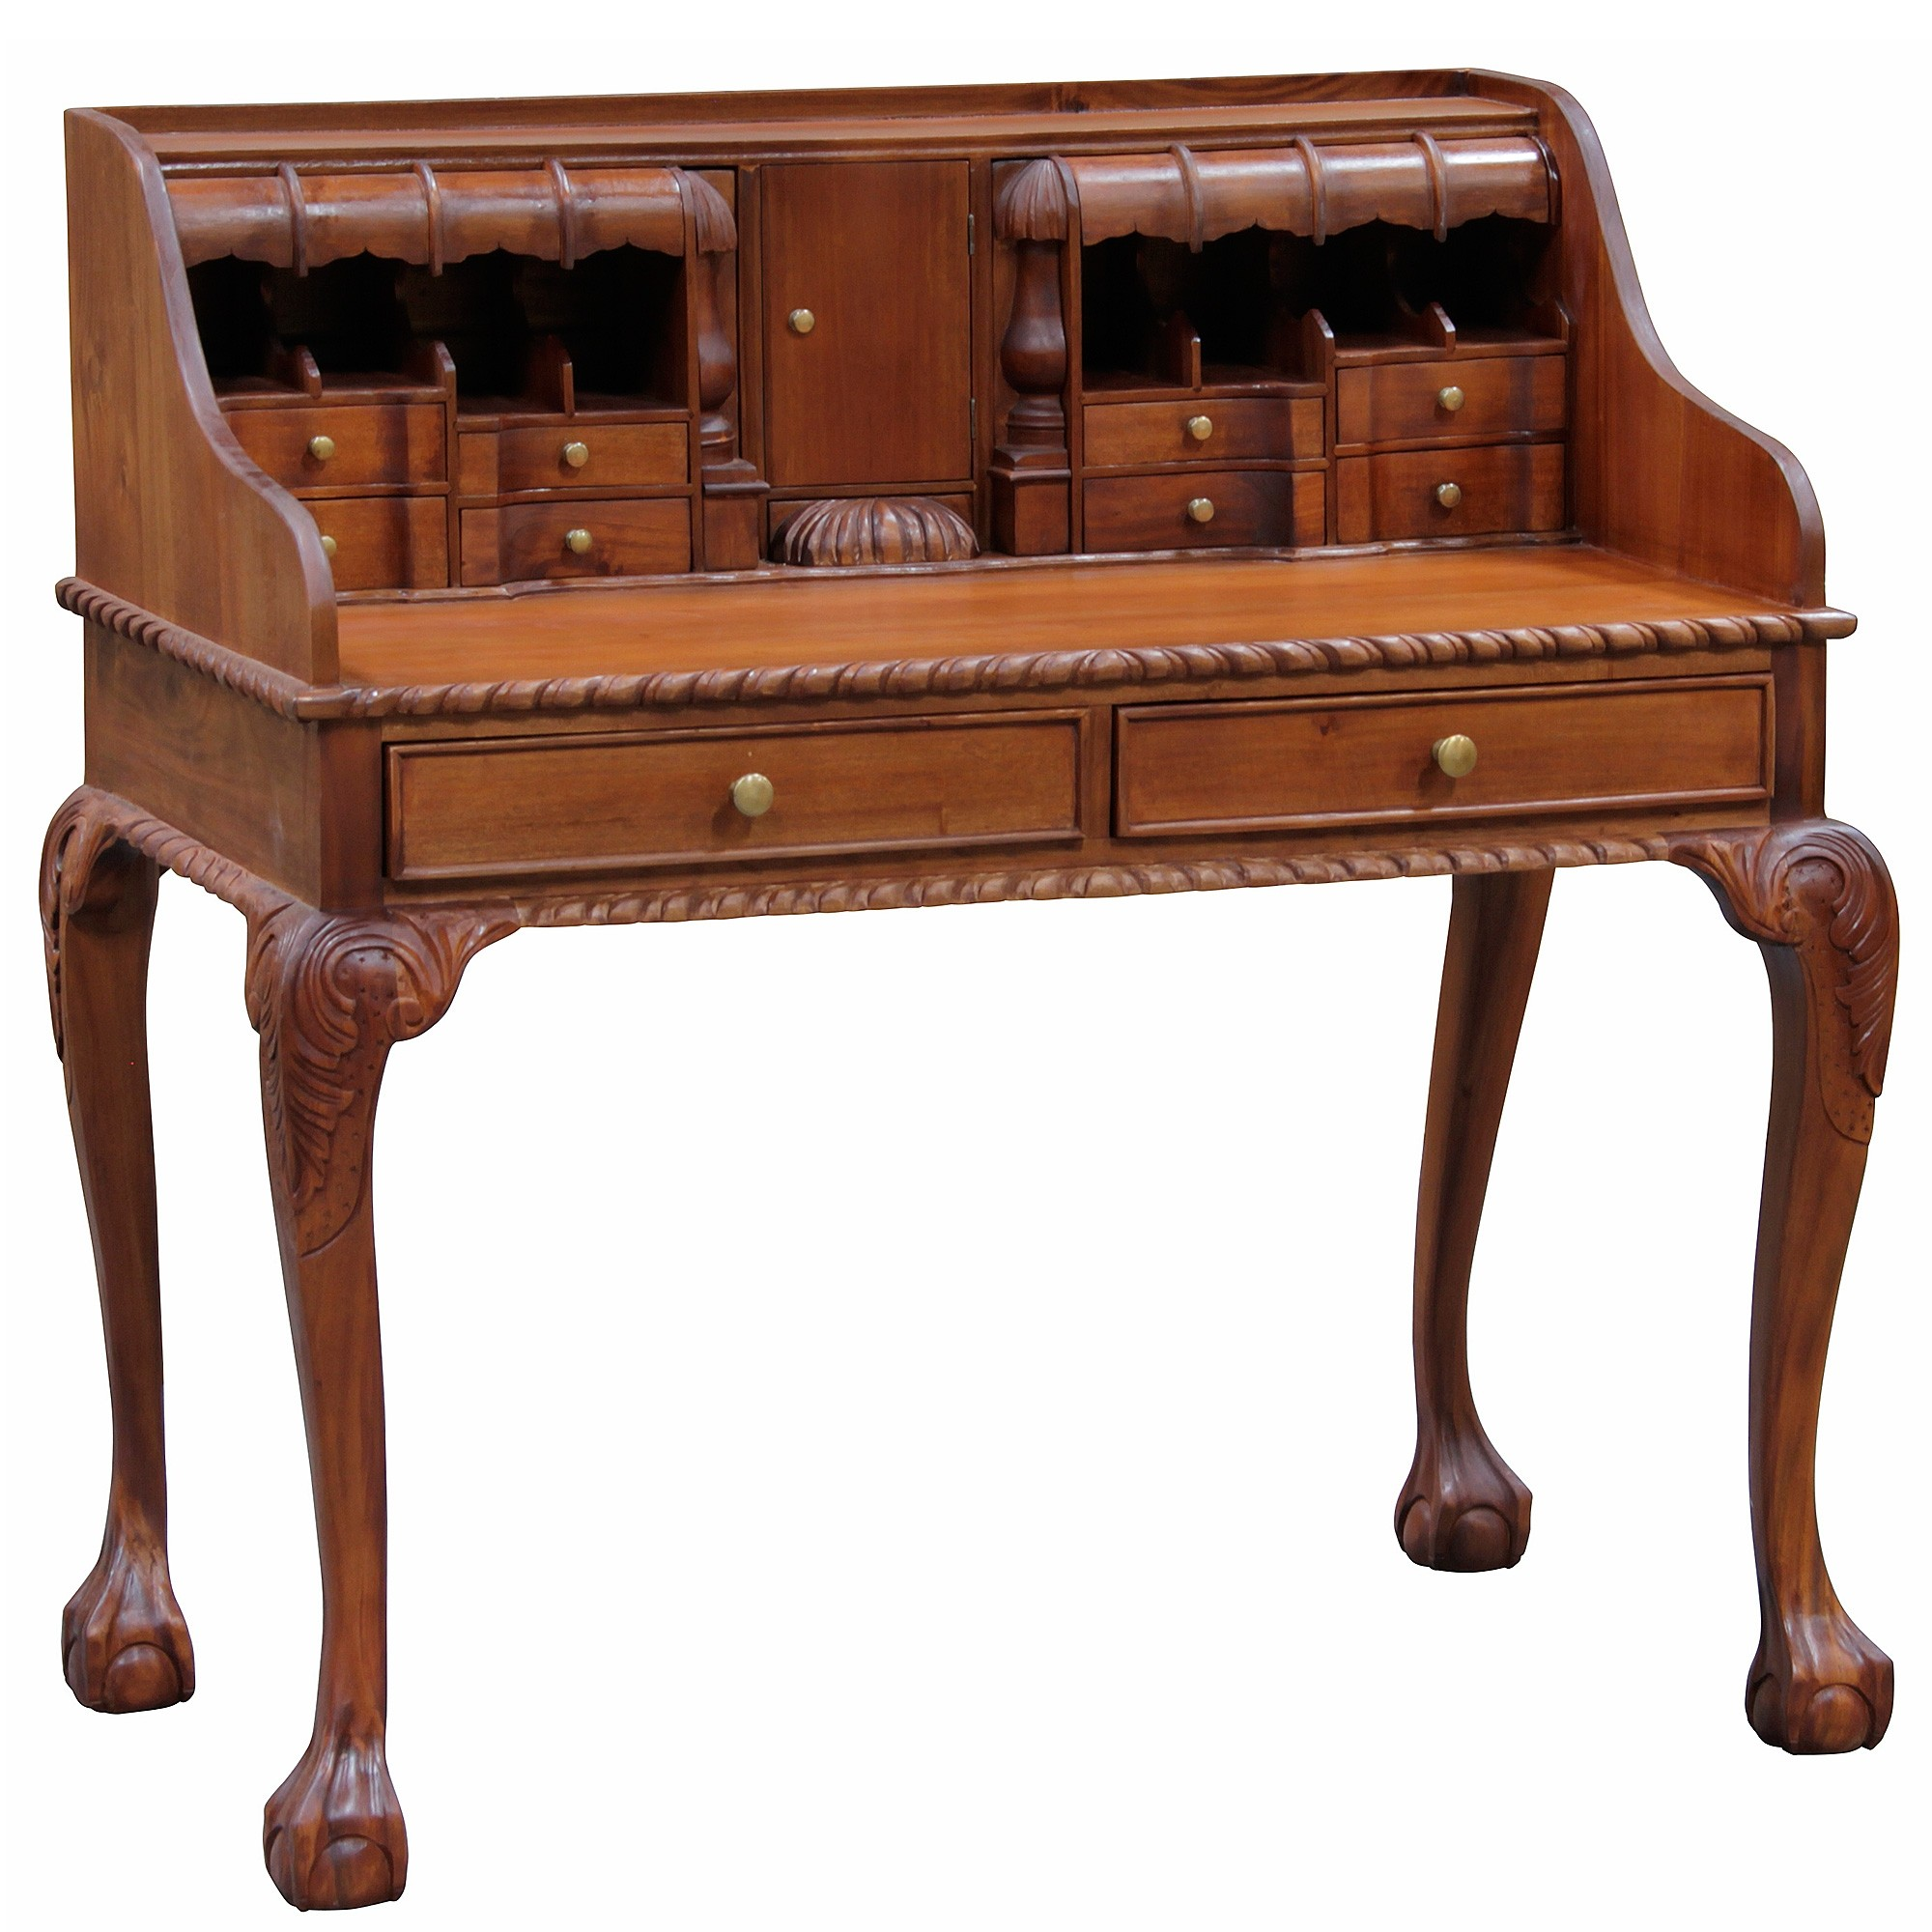 Queen Ann Solid Mahogany Timber Secretarys Desk - Light Pecan